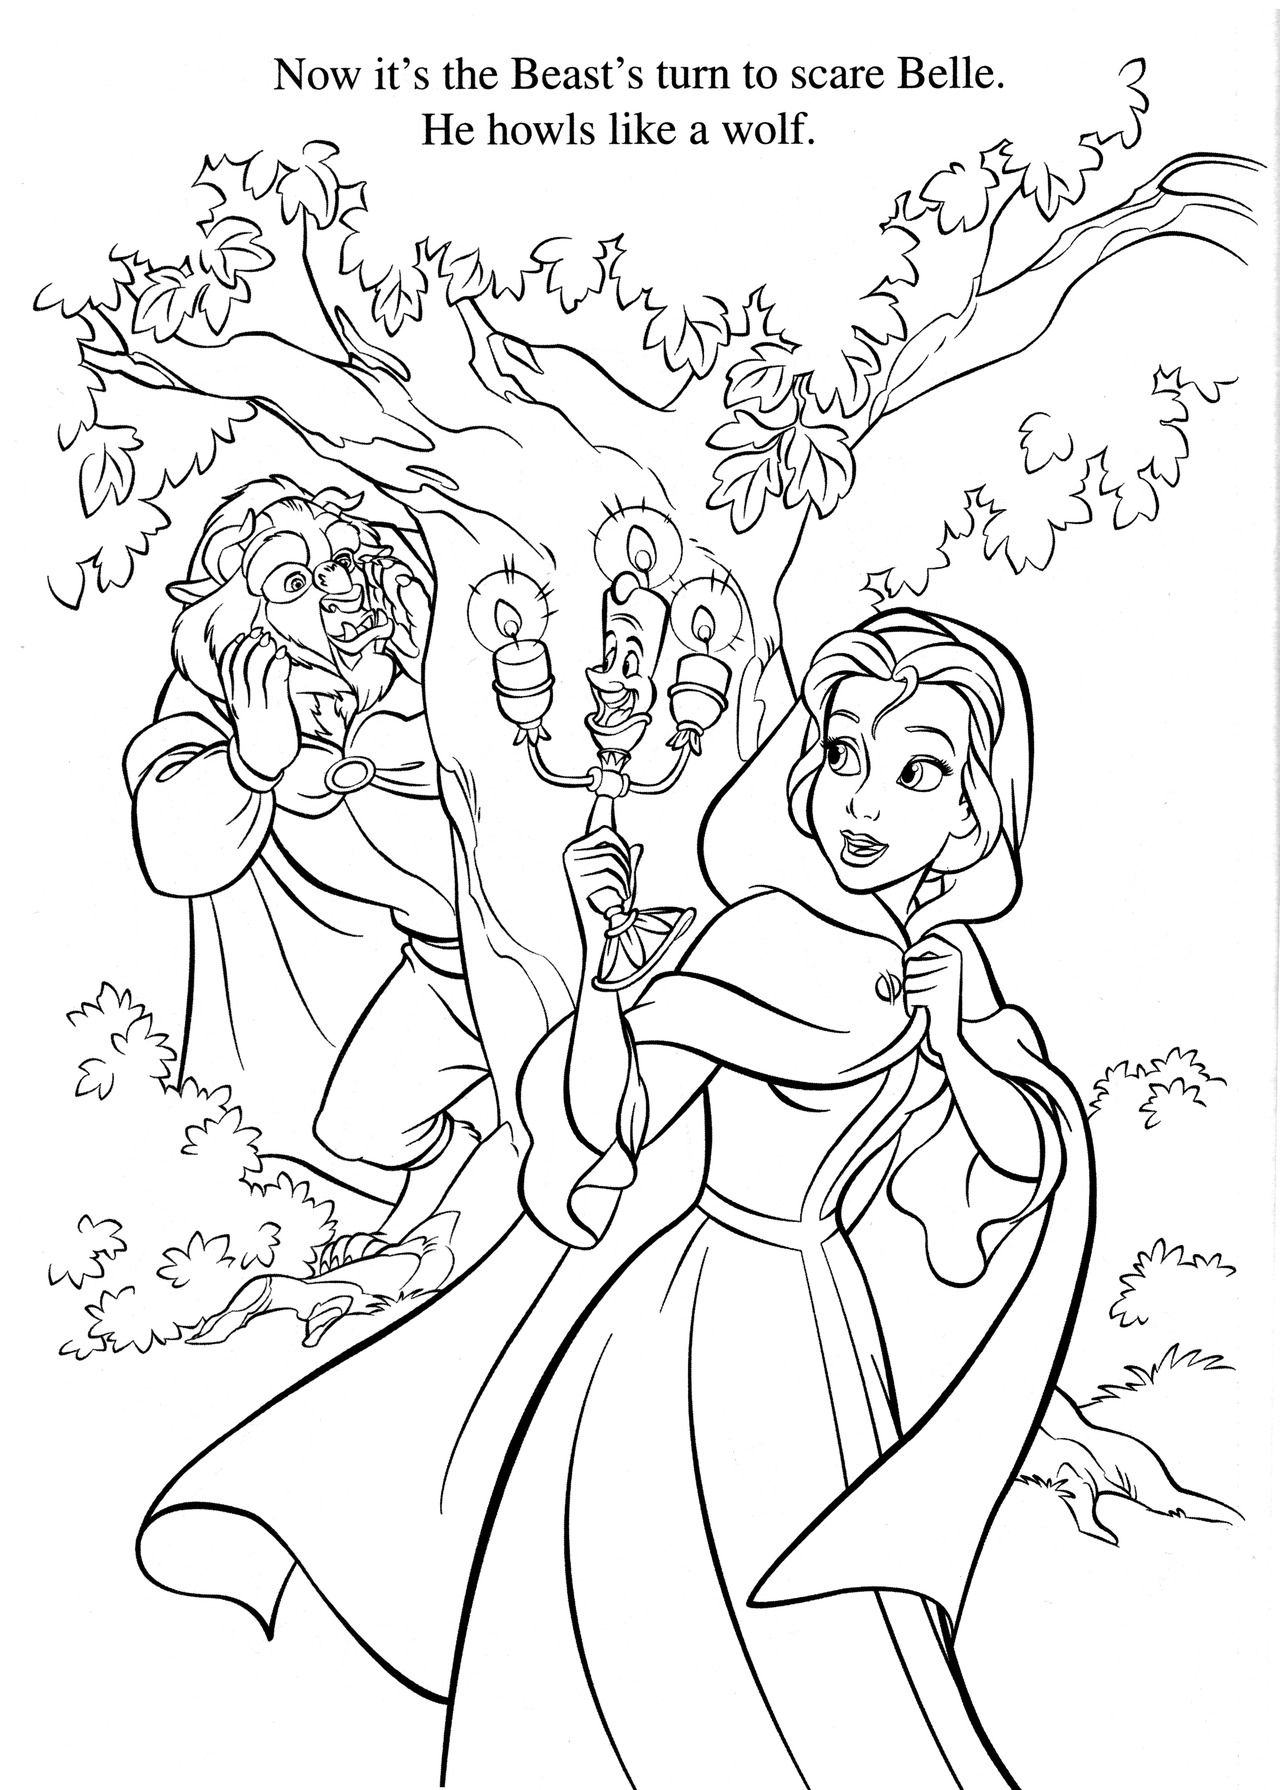 Ausmalbilder Disney Prinzessin : Disney Coloring Pages Beauty And The Beast Pinterest